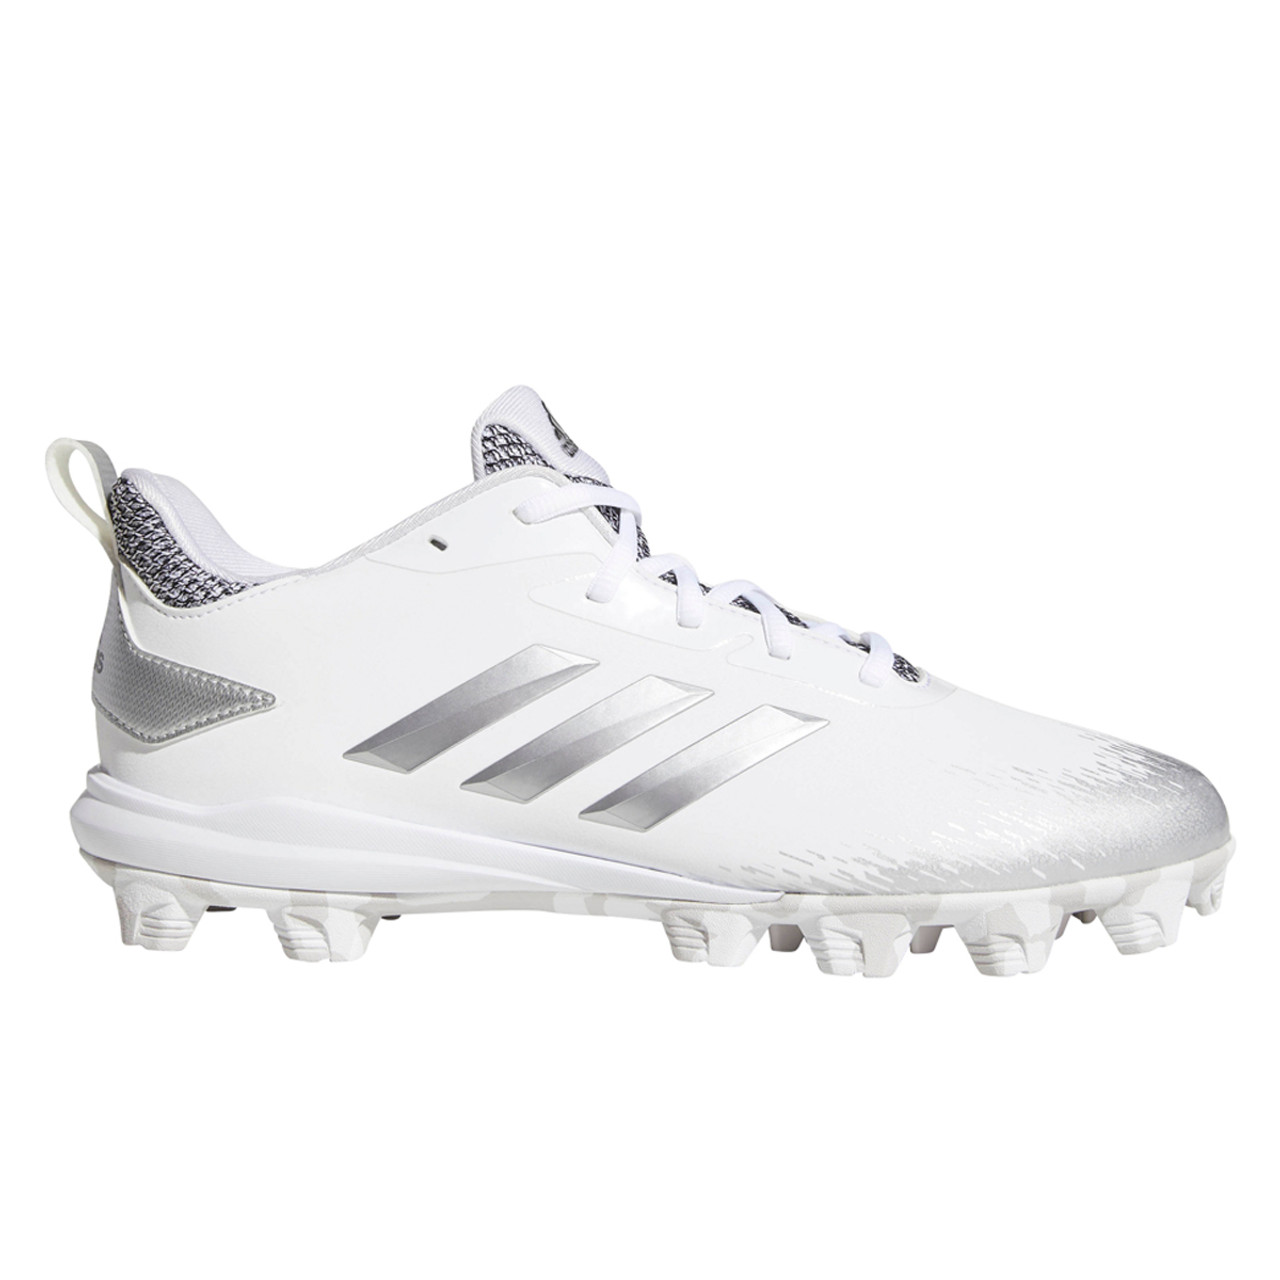 87137f97e4d Adidas Adizero Afterburner V MD Men s Baseball Cleats CG5236 ...